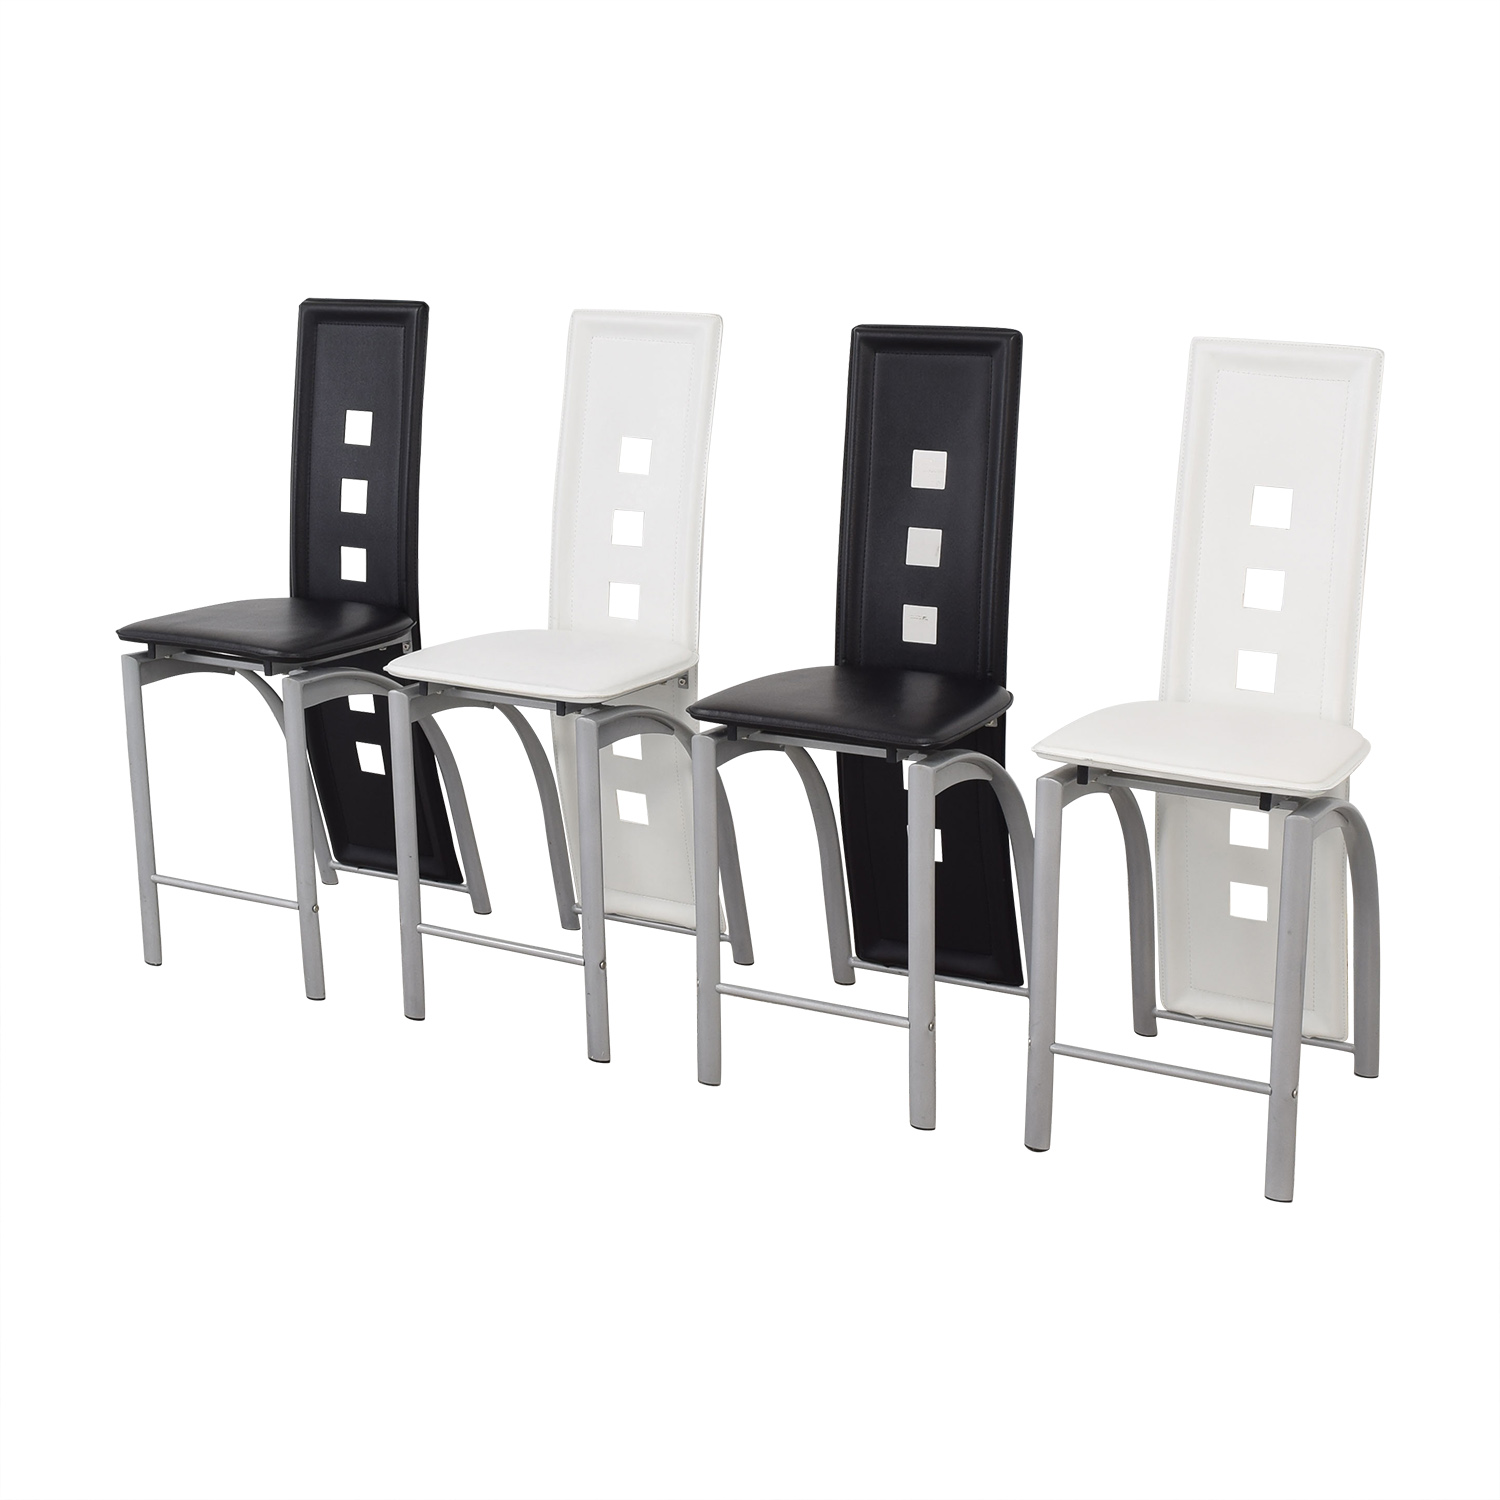 Black and White High Back Side Dining Chairs